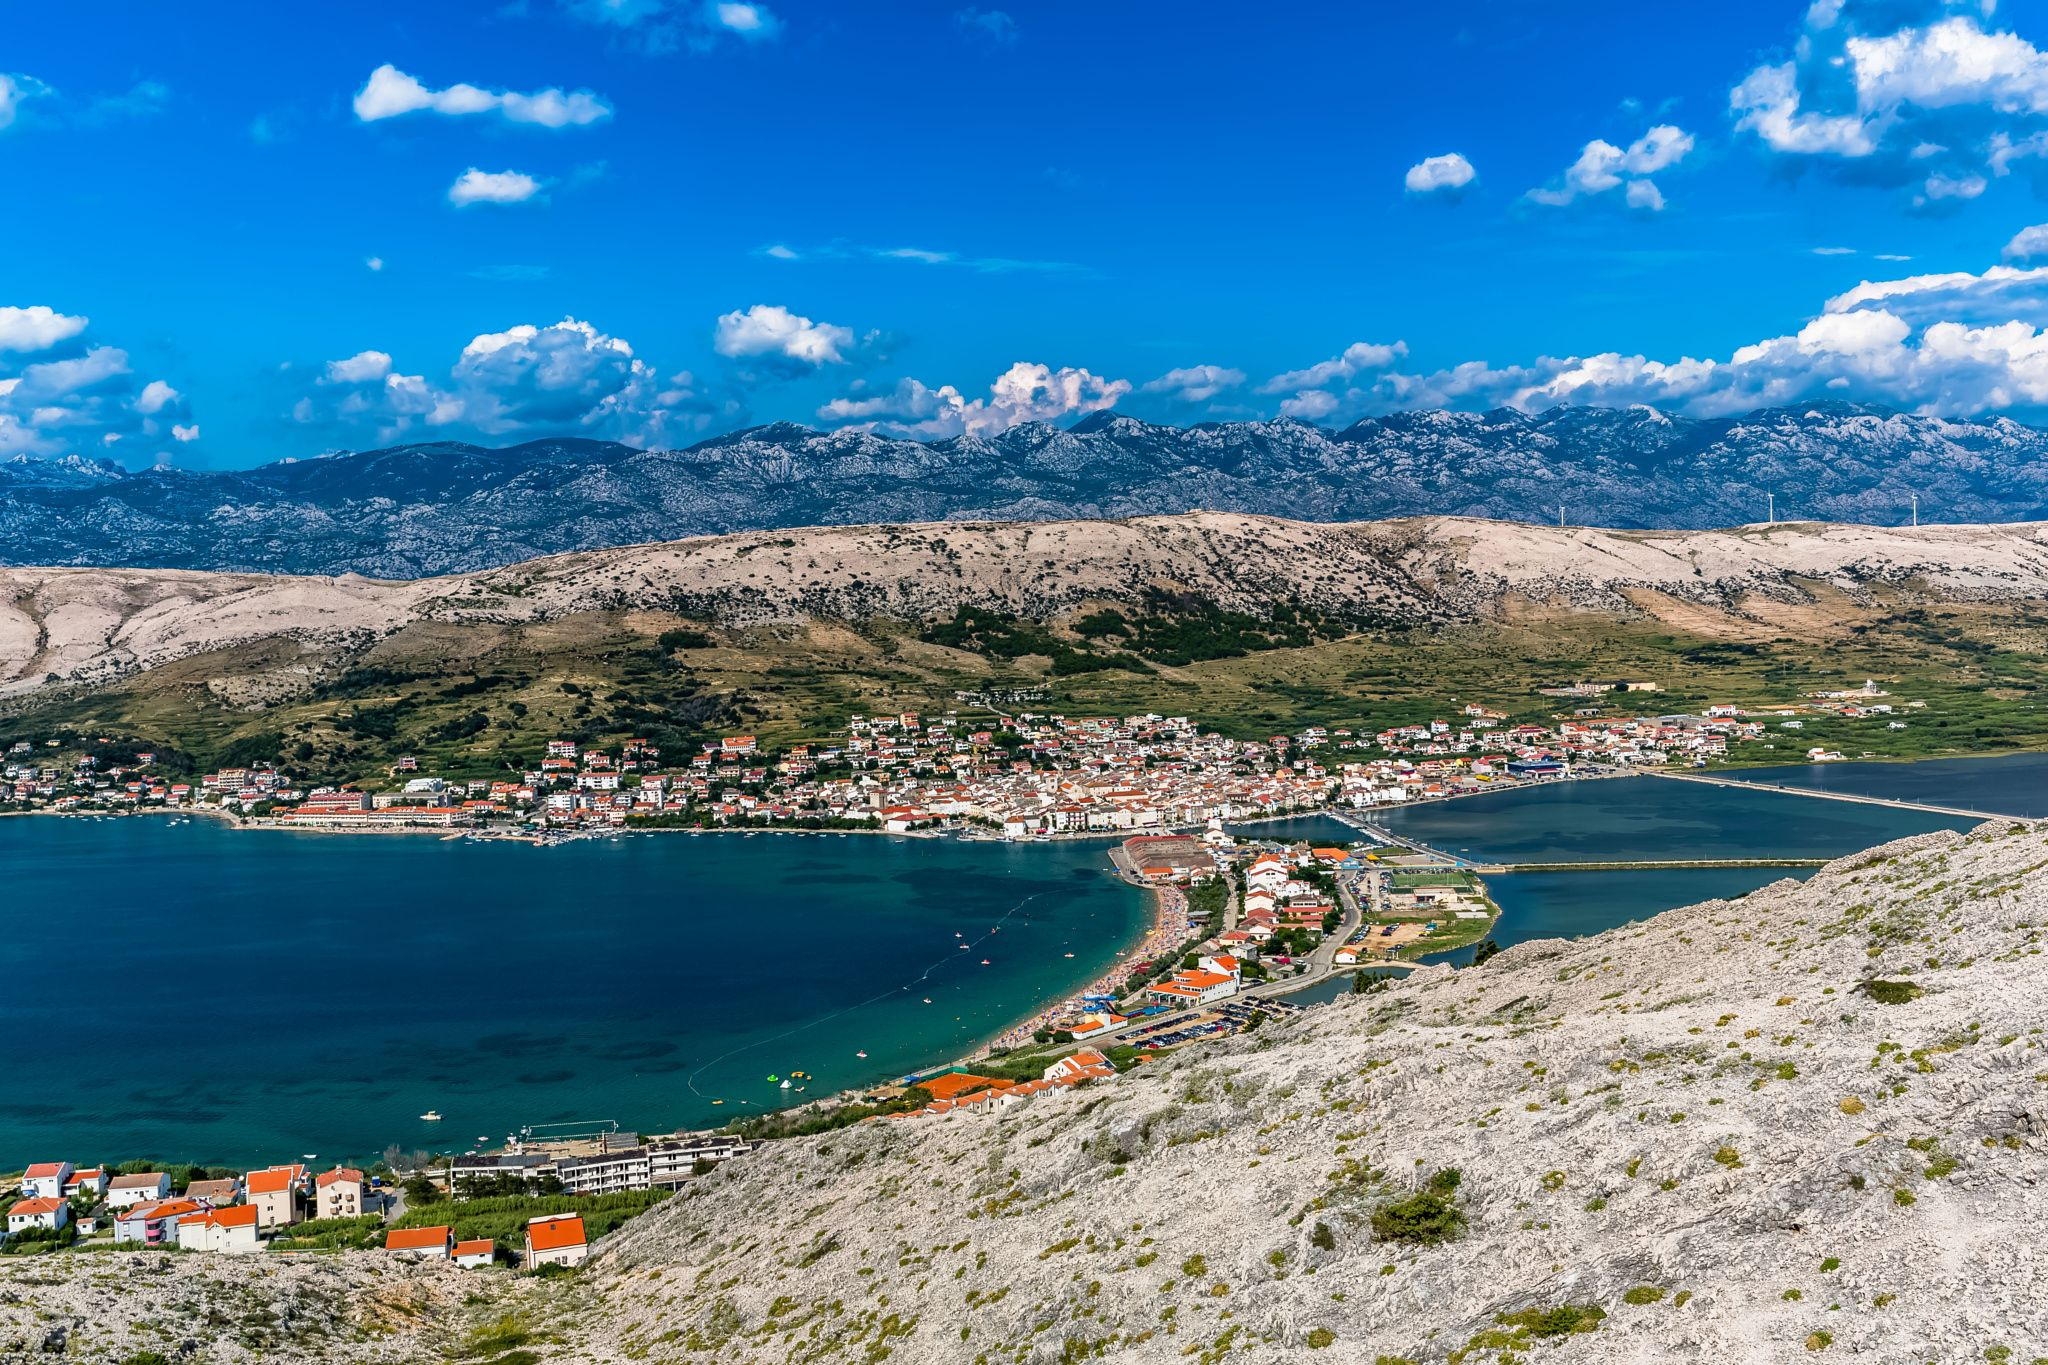 City of Pag,  Croatia by Europe Trotter on 500px